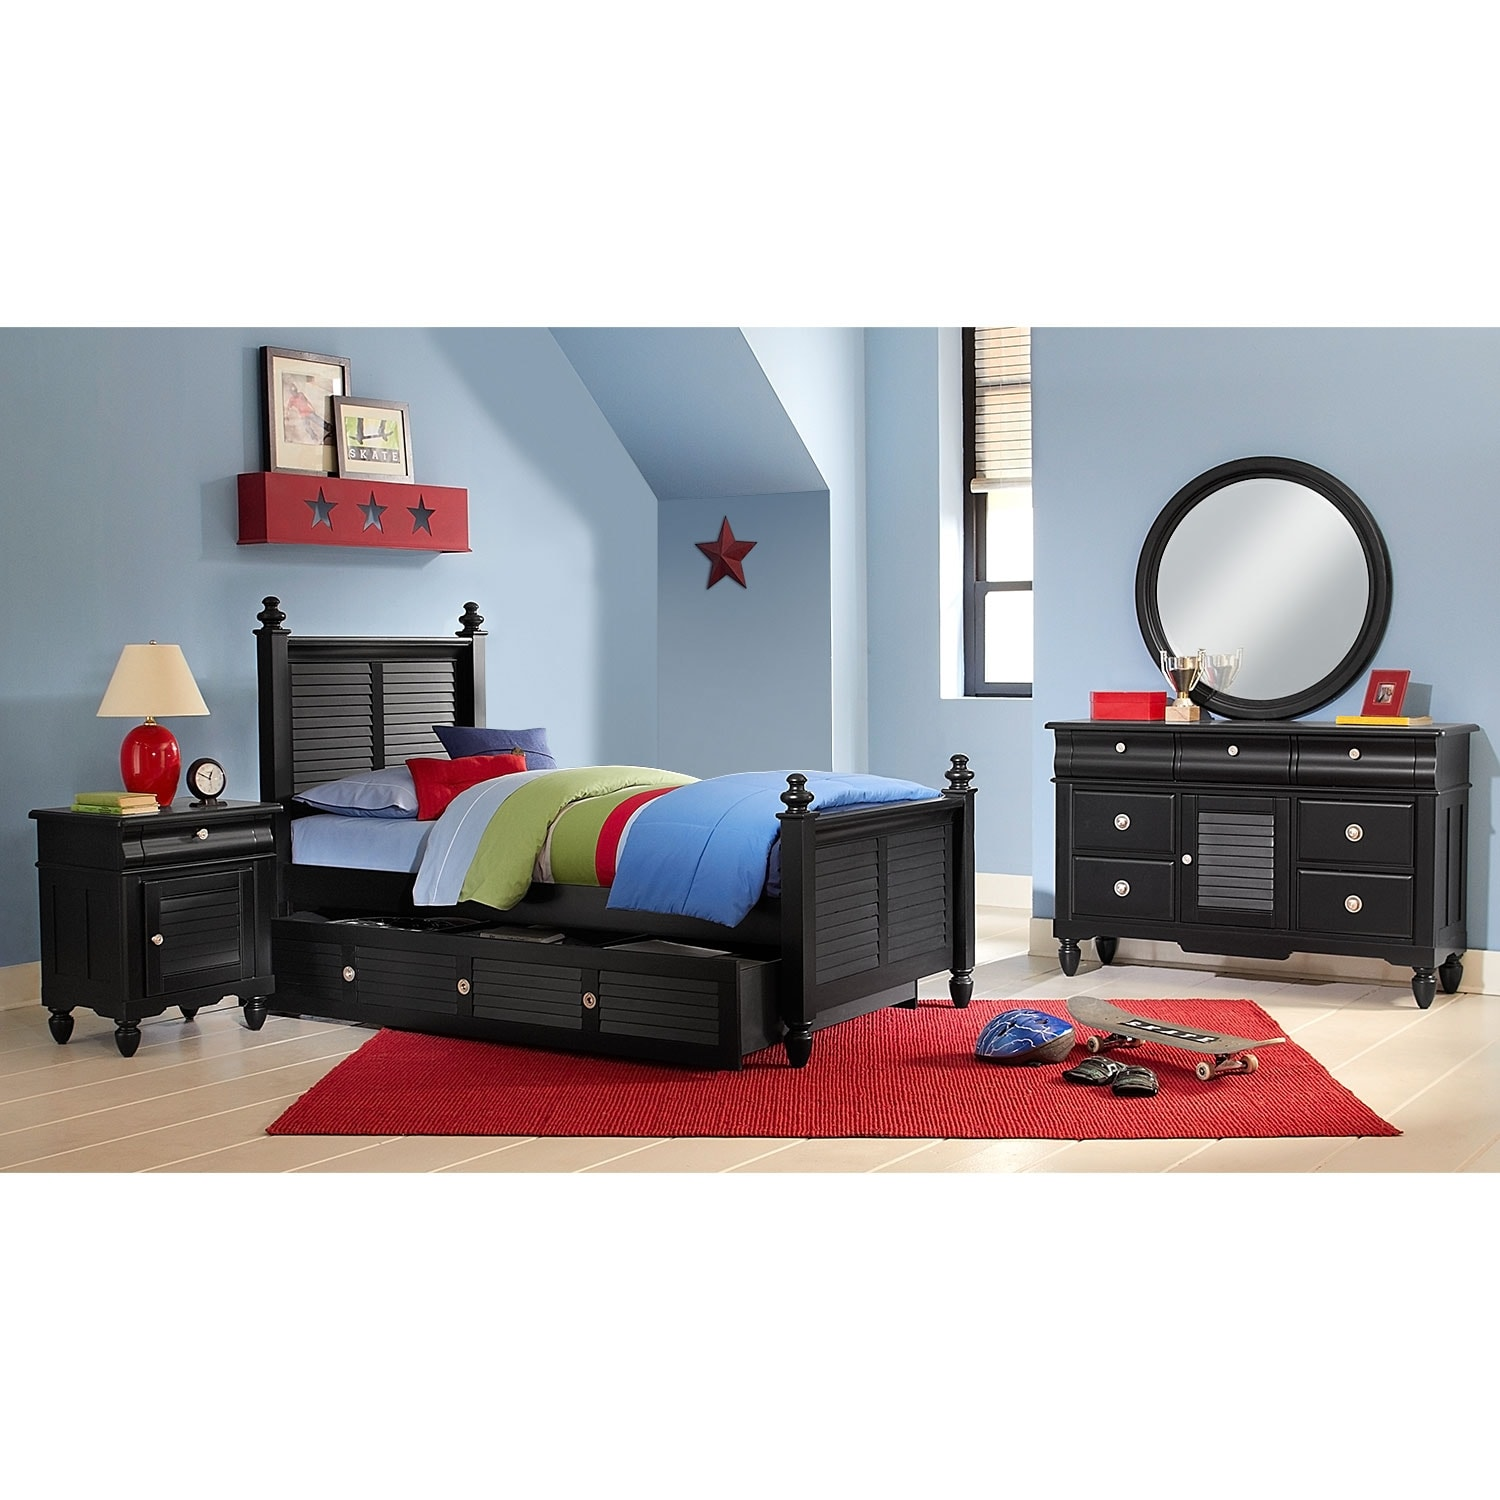 Seaside 7-Piece Twin Bedroom Set with Trundle - Black